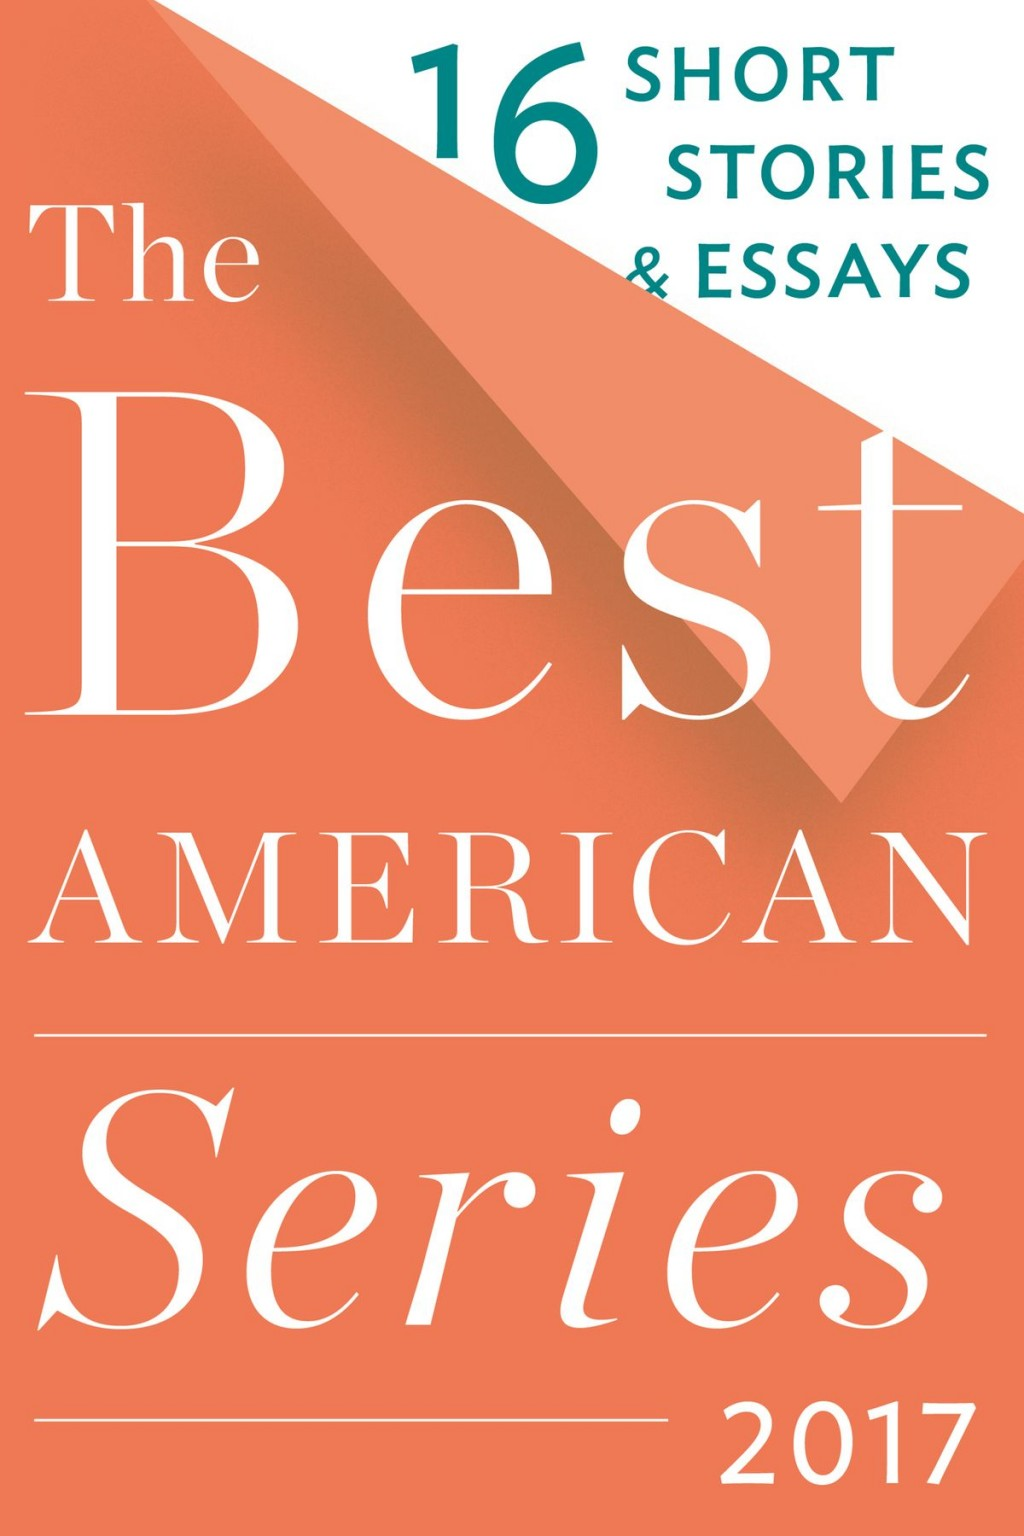 008 The Best American Series Essays Essay Astounding 2017 Submissions Pdf Free Download Large